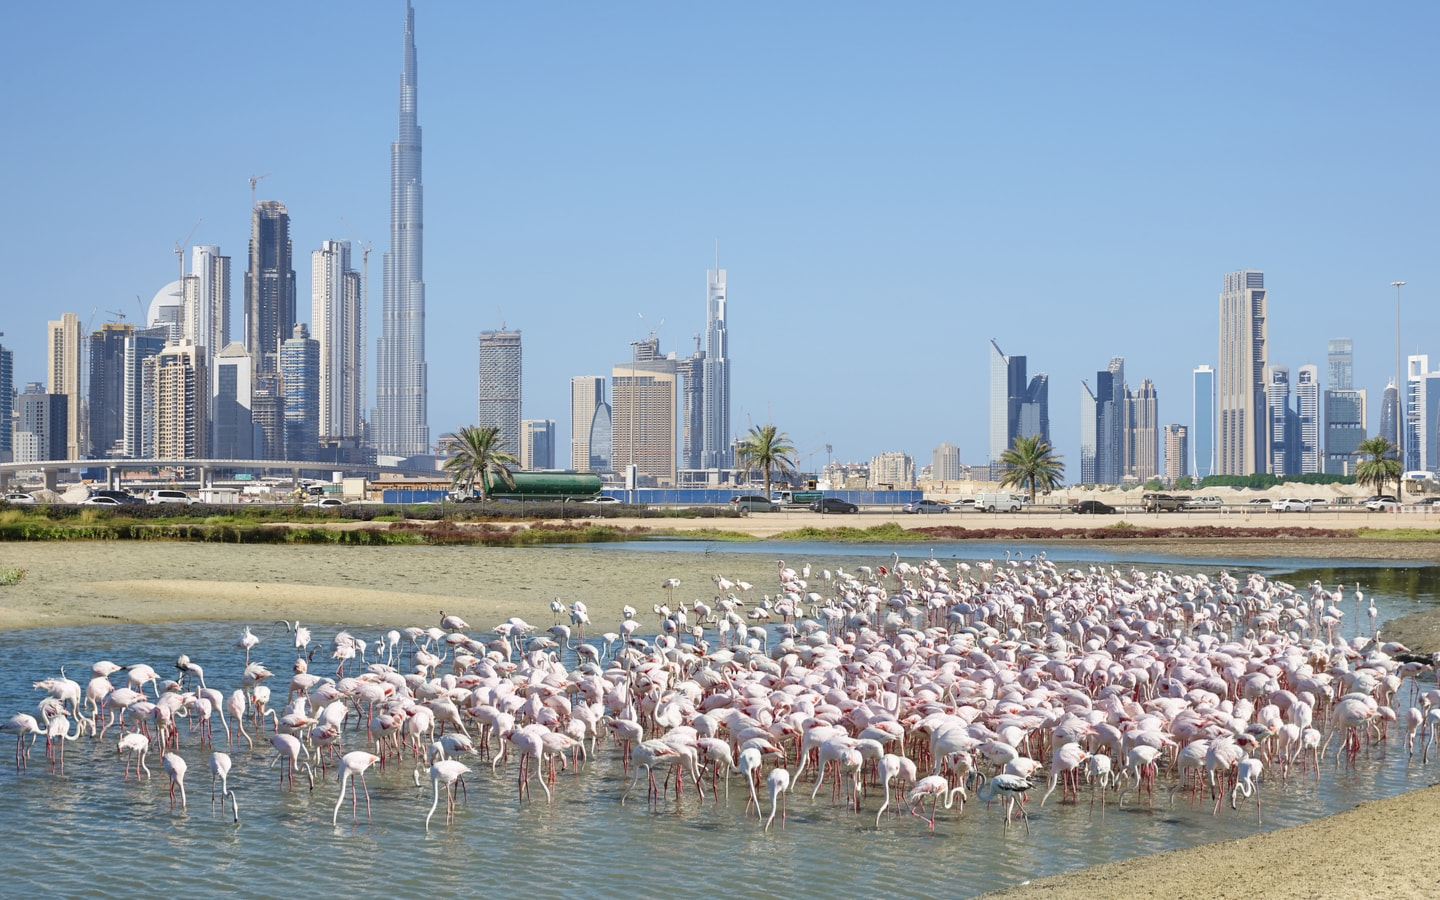 Free Things Anyone Can Do in Dubai to Have a Great Time